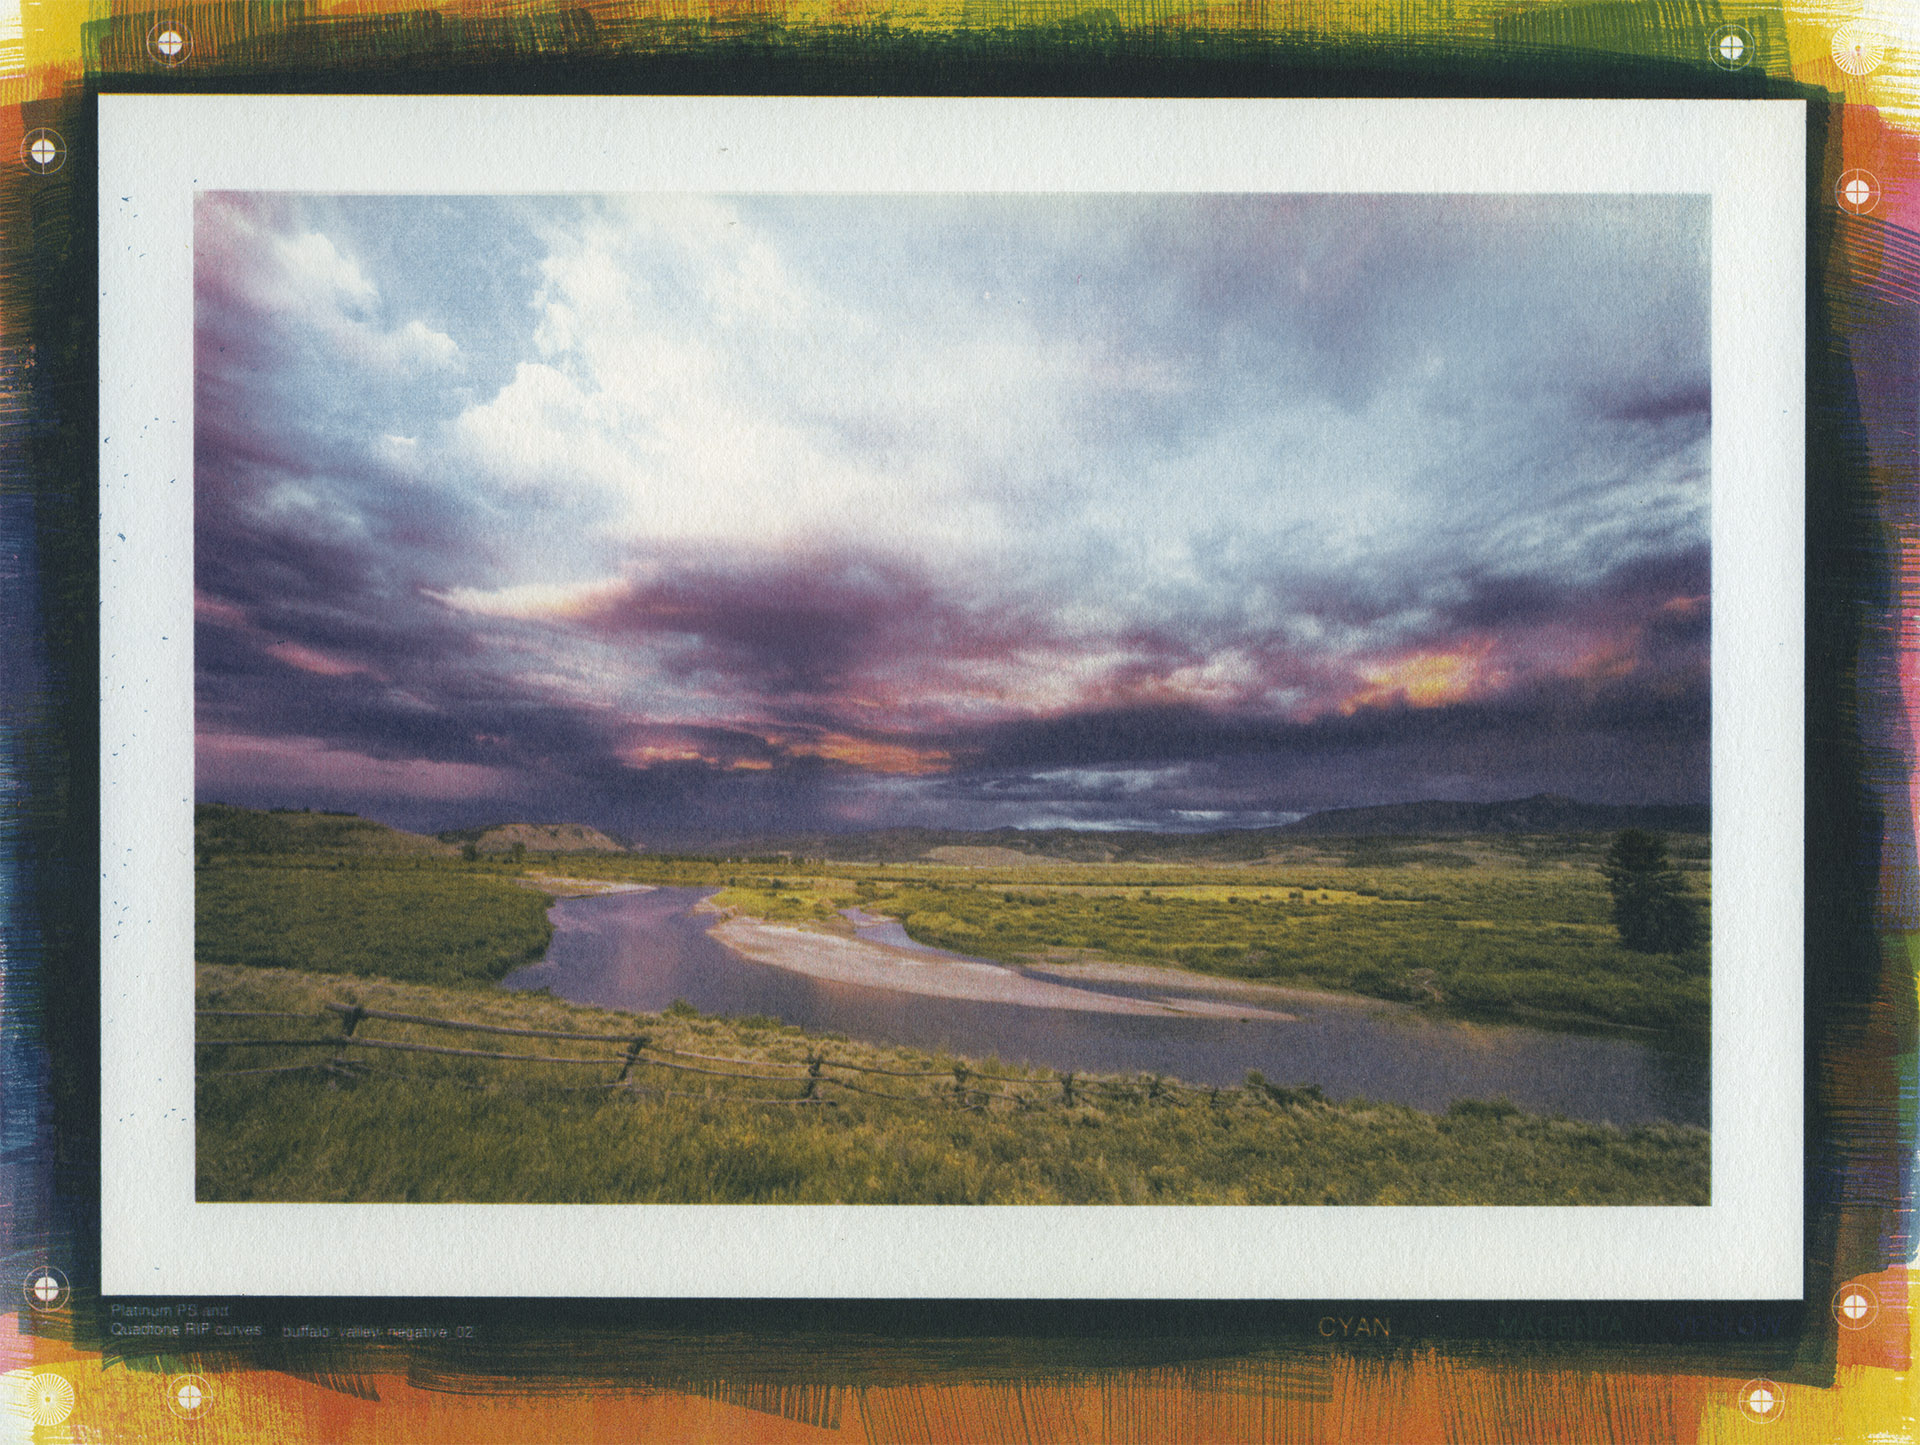 Buffalo Valley, Wyoming. Tri-color gum print, 6x9 inches.